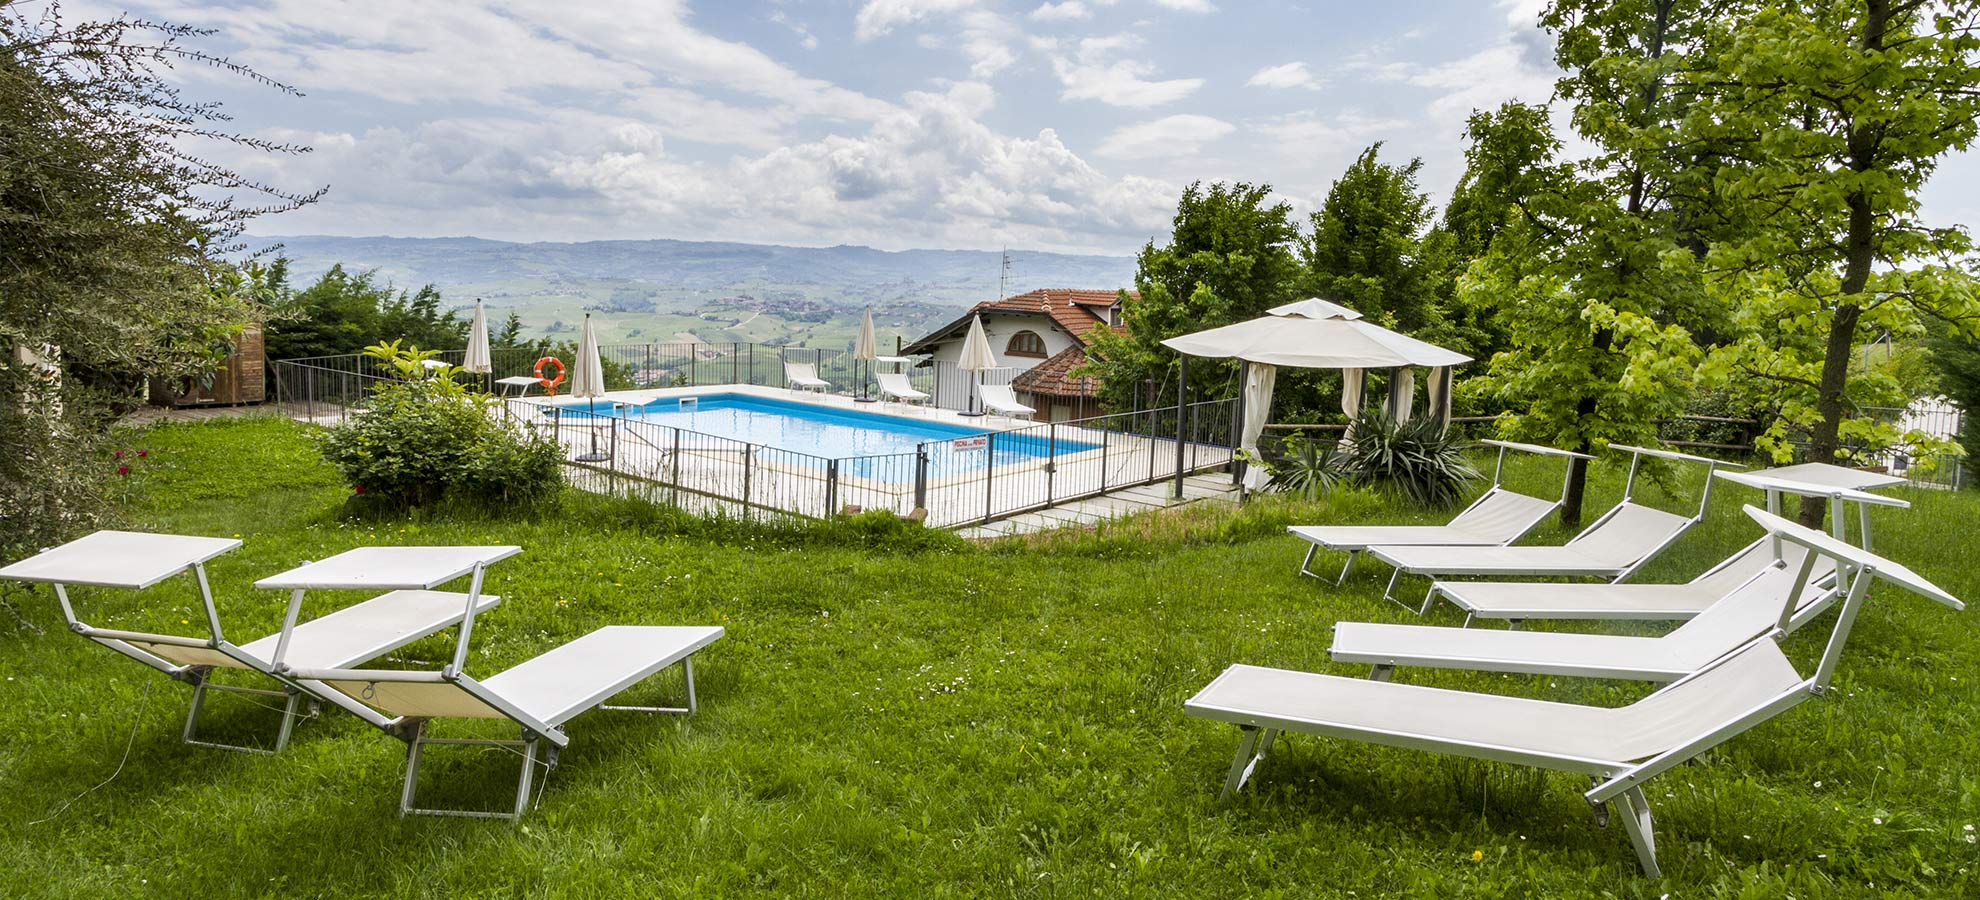 agriturimo-langhe-con-piscina